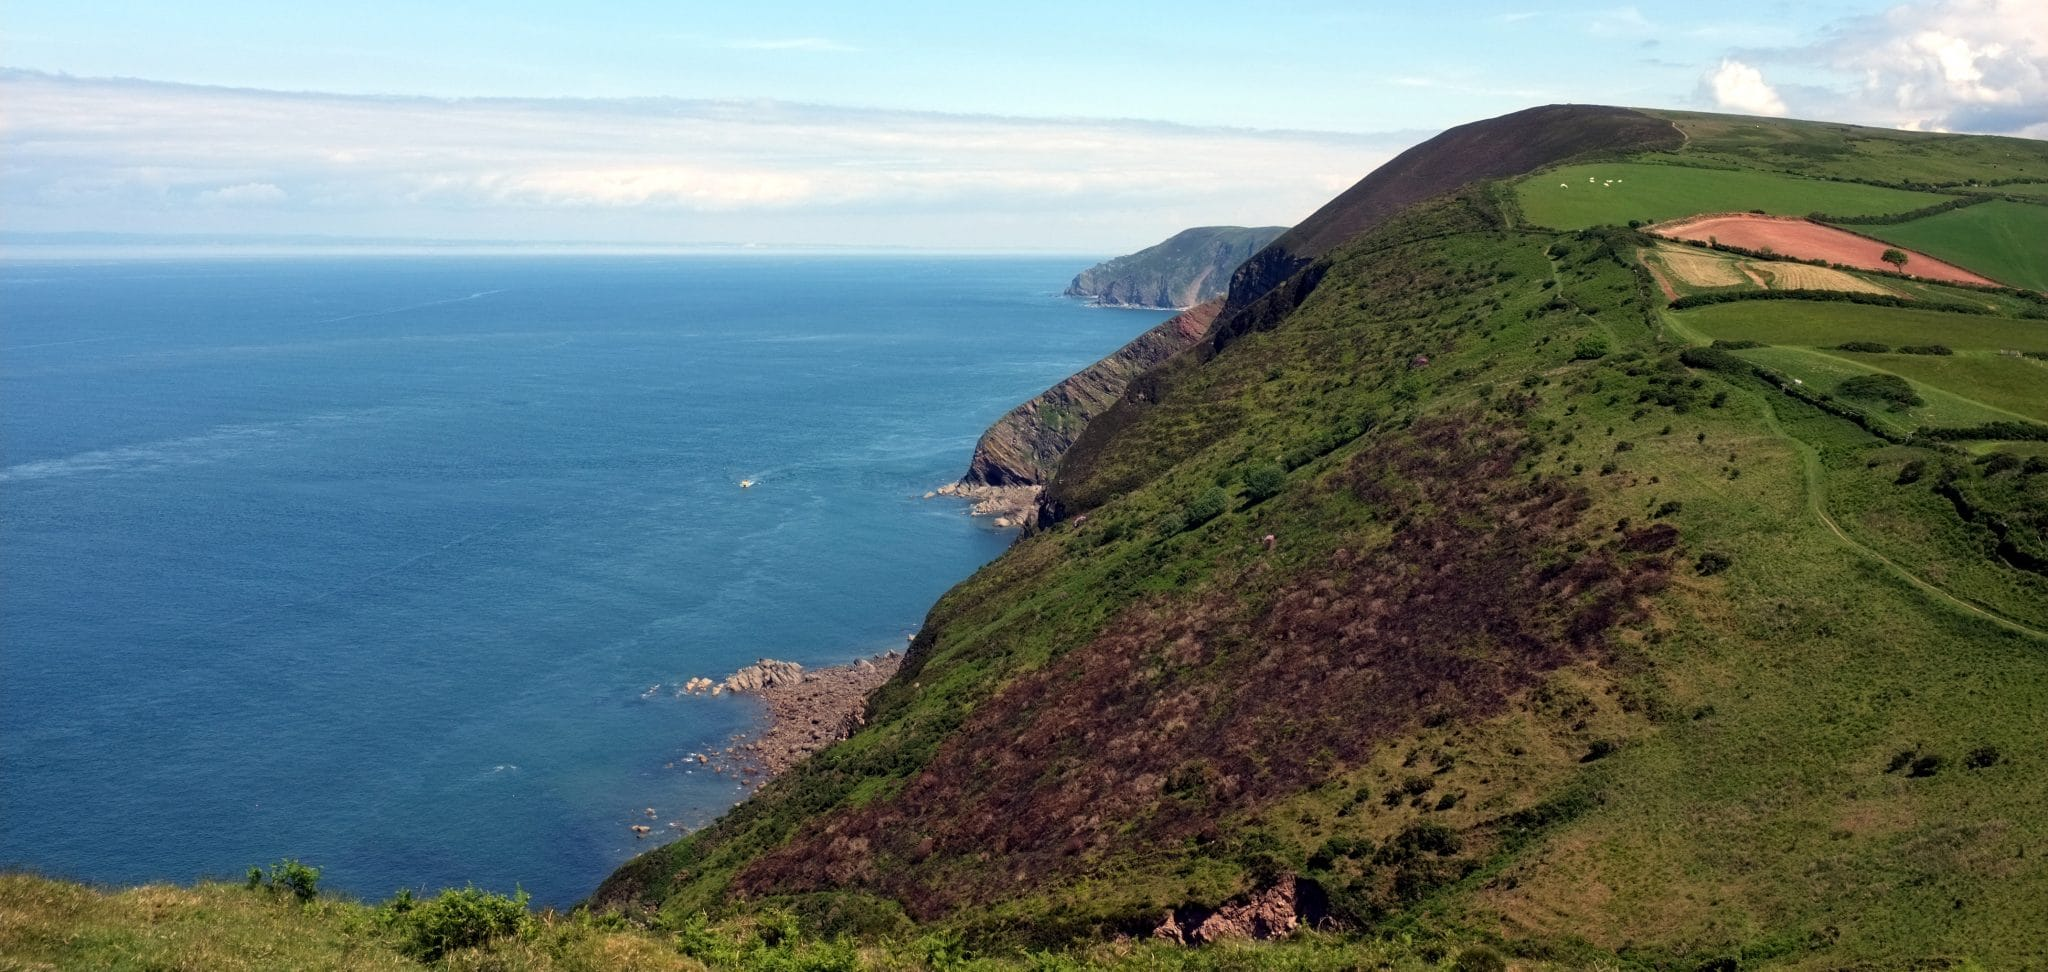 Photo showing the north Devon coastal cliffs above the sea at Great Hangman